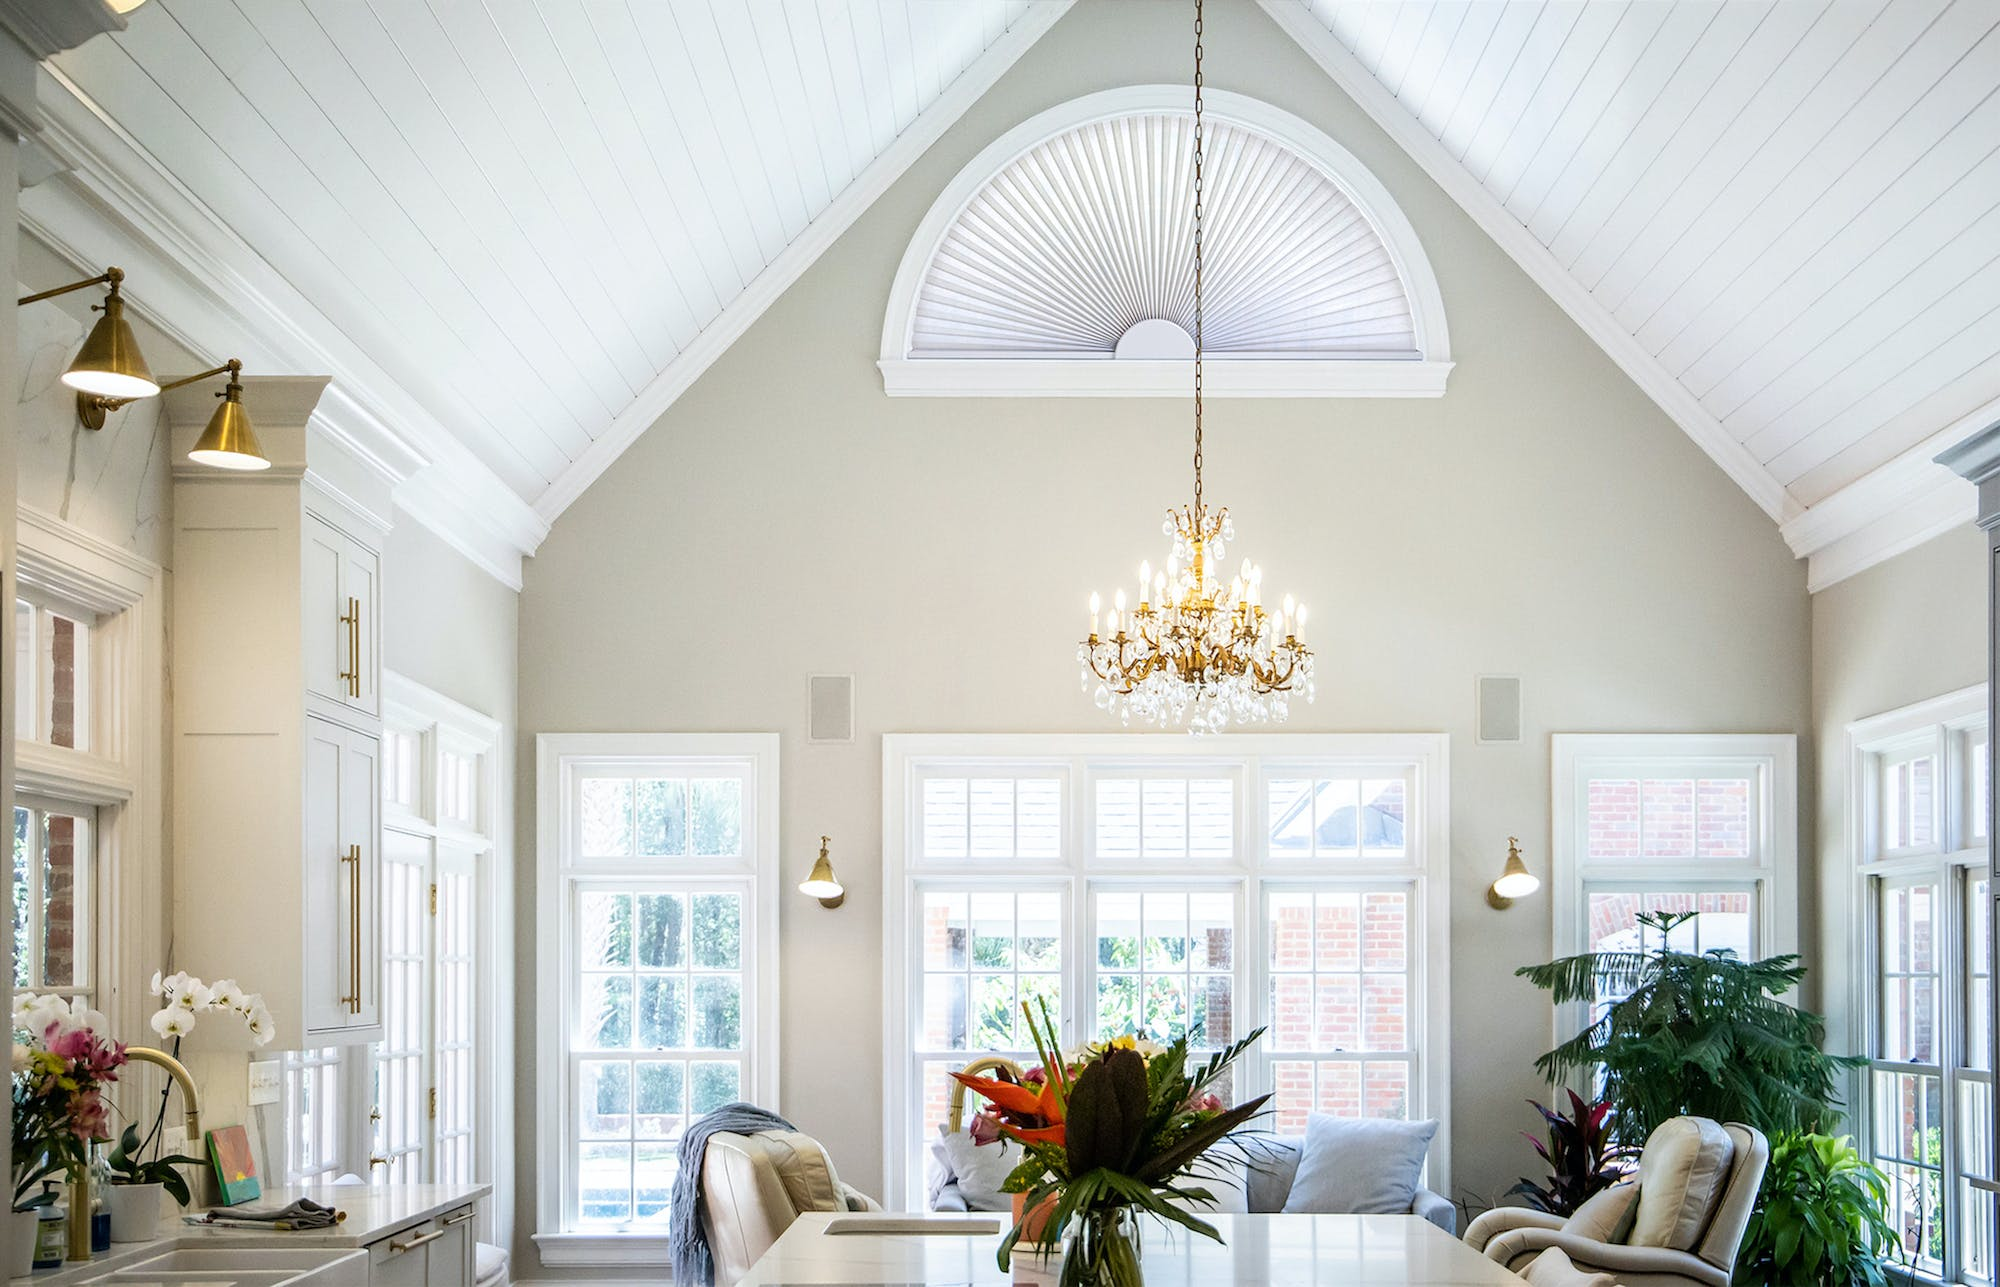 Contemporary living room with a gabled ceiling with a large arched window covered with a light filtering solar shade.